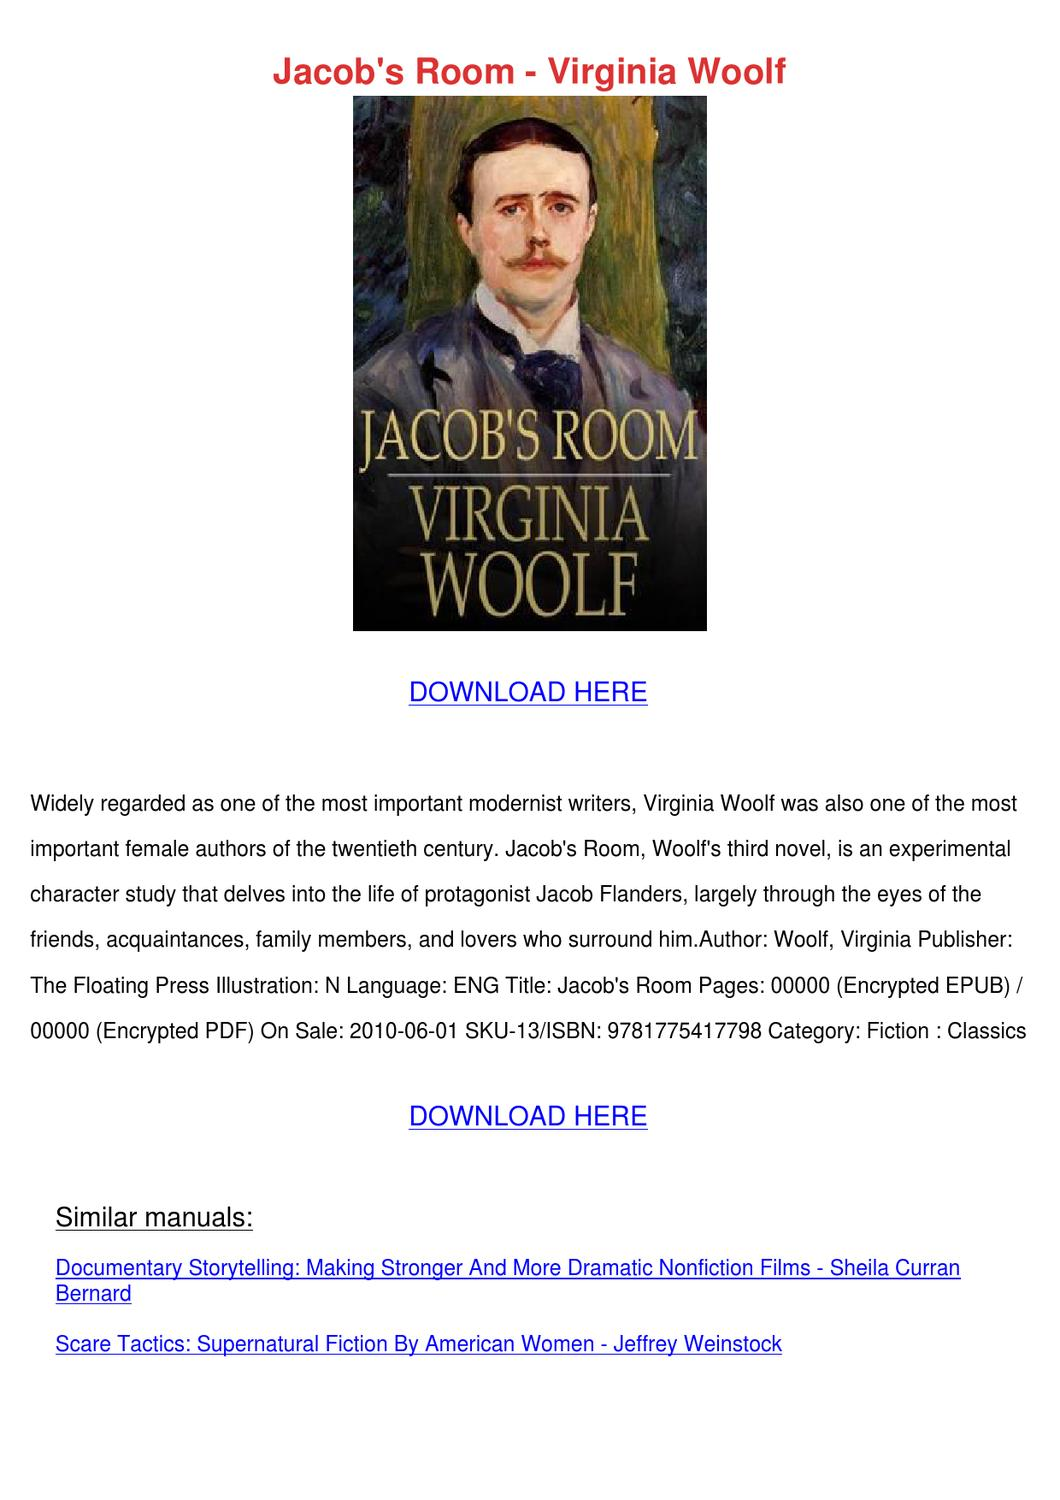 an overview of the life of virginia woolf in the novel jacobs room Top ten punctuation tips  1  i don't particularly like the play who's afraid of virginia woolf i didn't like it even when i worked at yahoo.